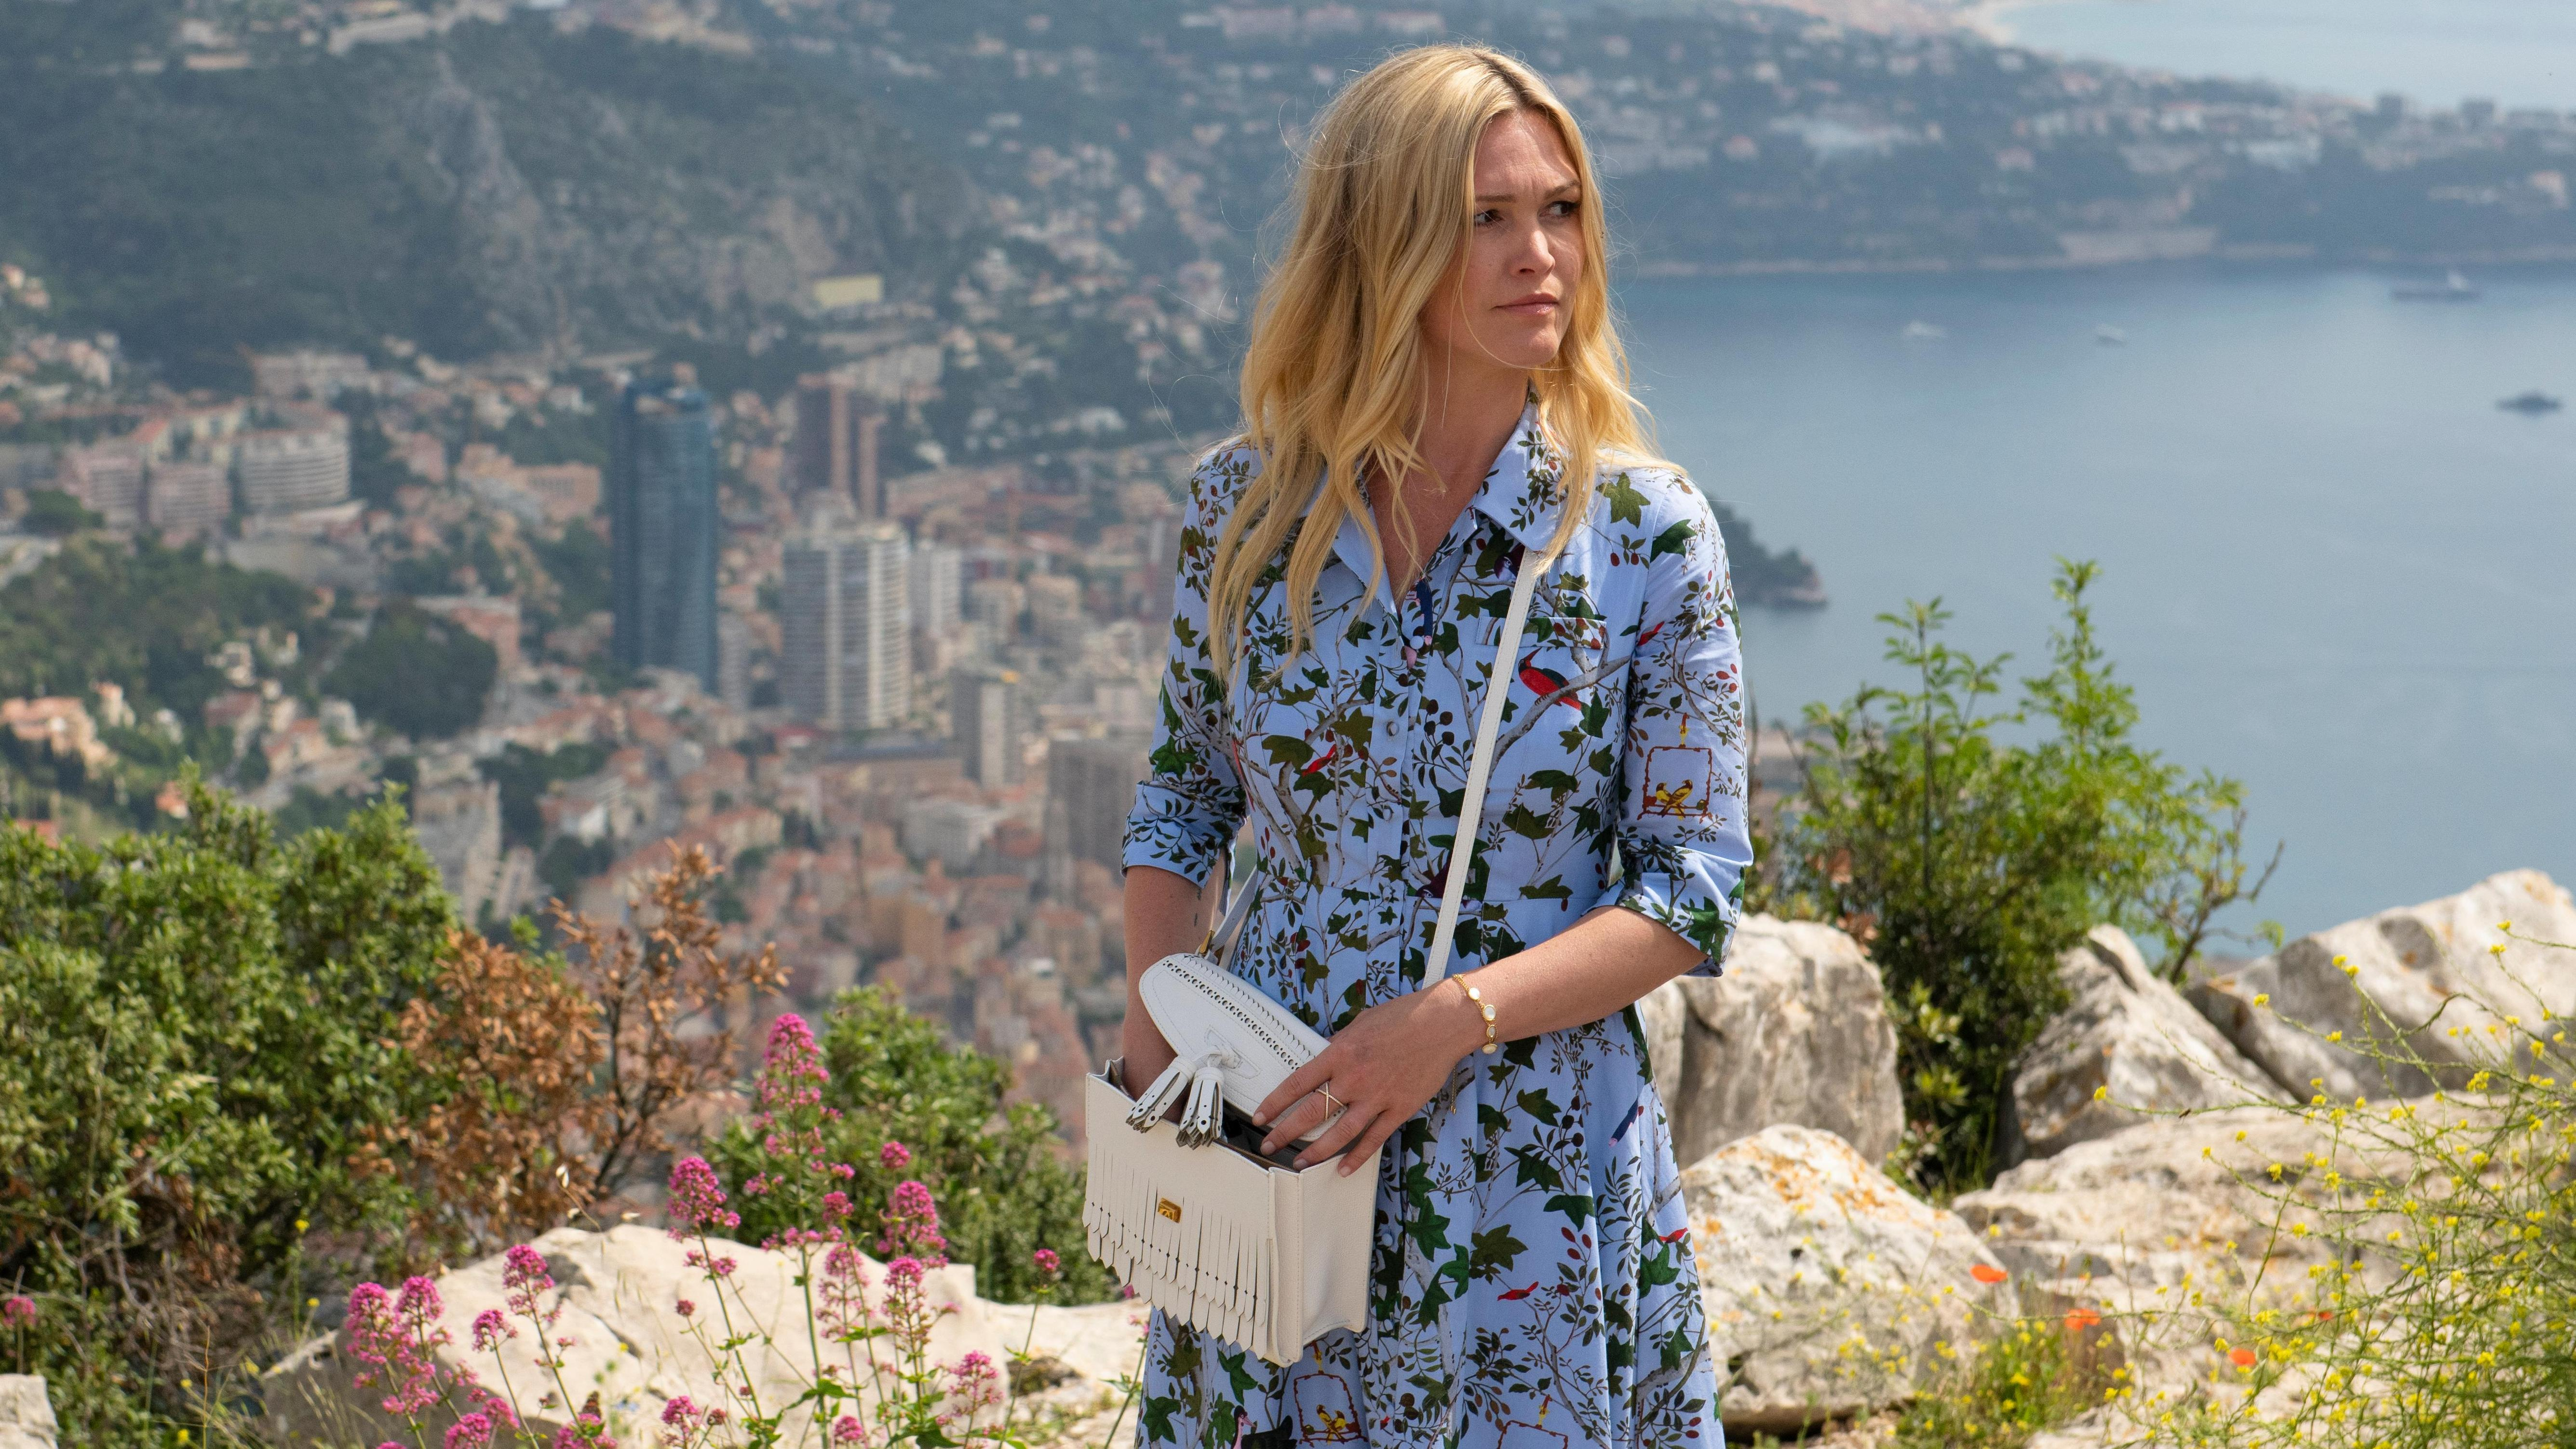 Riviera review — if only they had all been blown up on that yacht